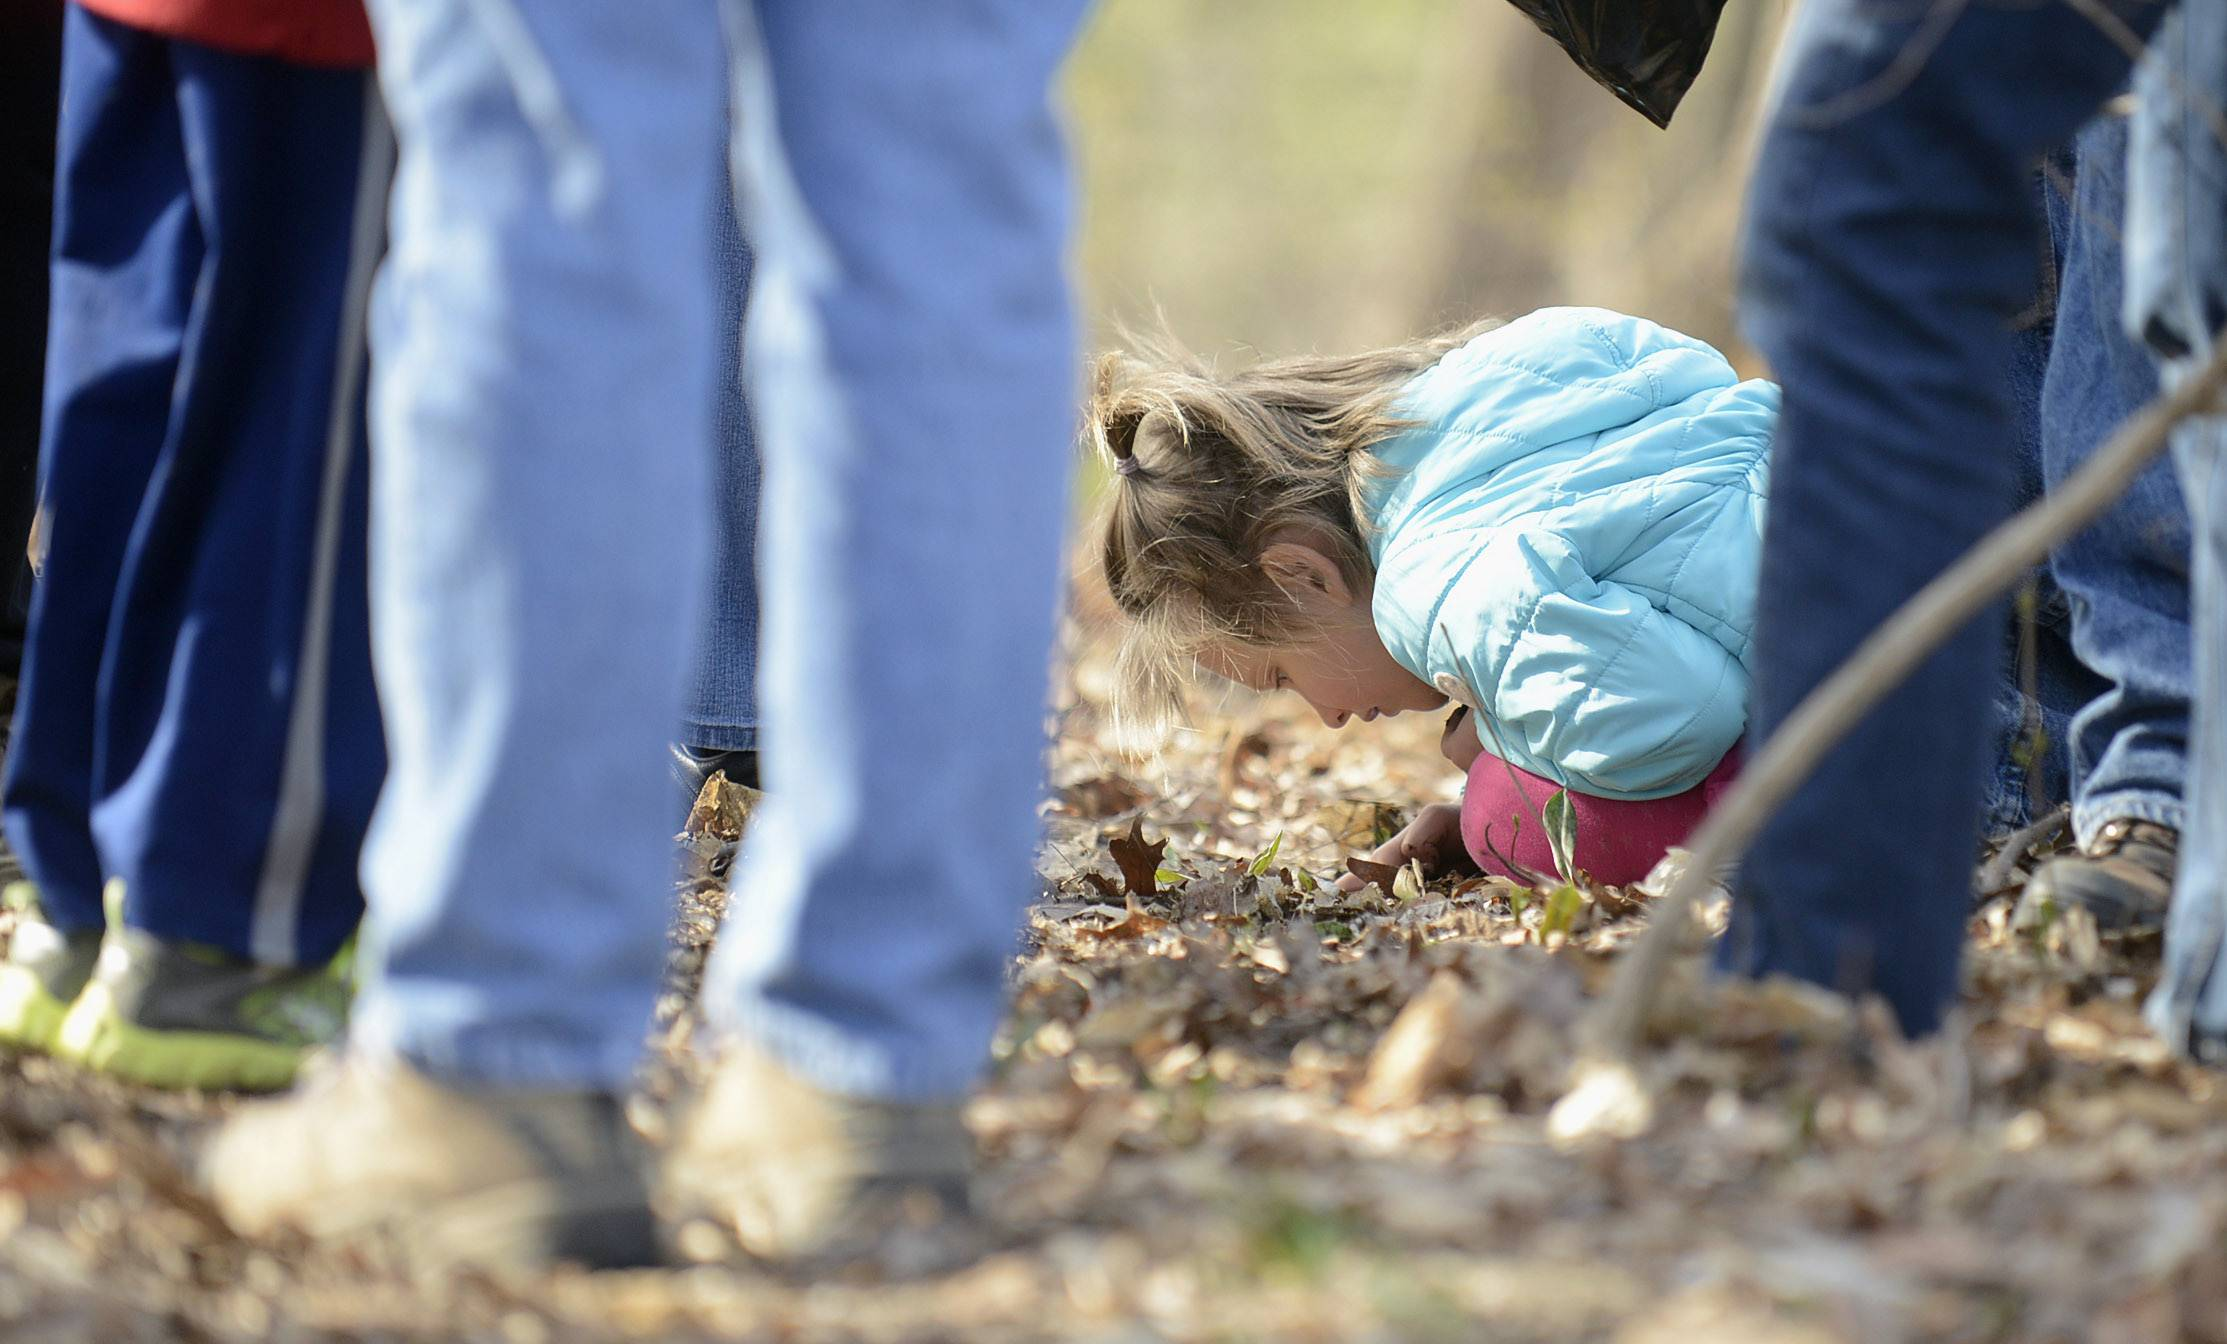 While hikers discuss types of trees and fungi, Chloe Agustsson, 6, of St. Charles, explores the forest floor during an Earth Day nature walk at LeRoy Oakes Forest Preserve in St. Charles on Tuesday. The warm weather drew about 60 people, who were divided into three groups to explore the woods and prairie areas of the preserve.